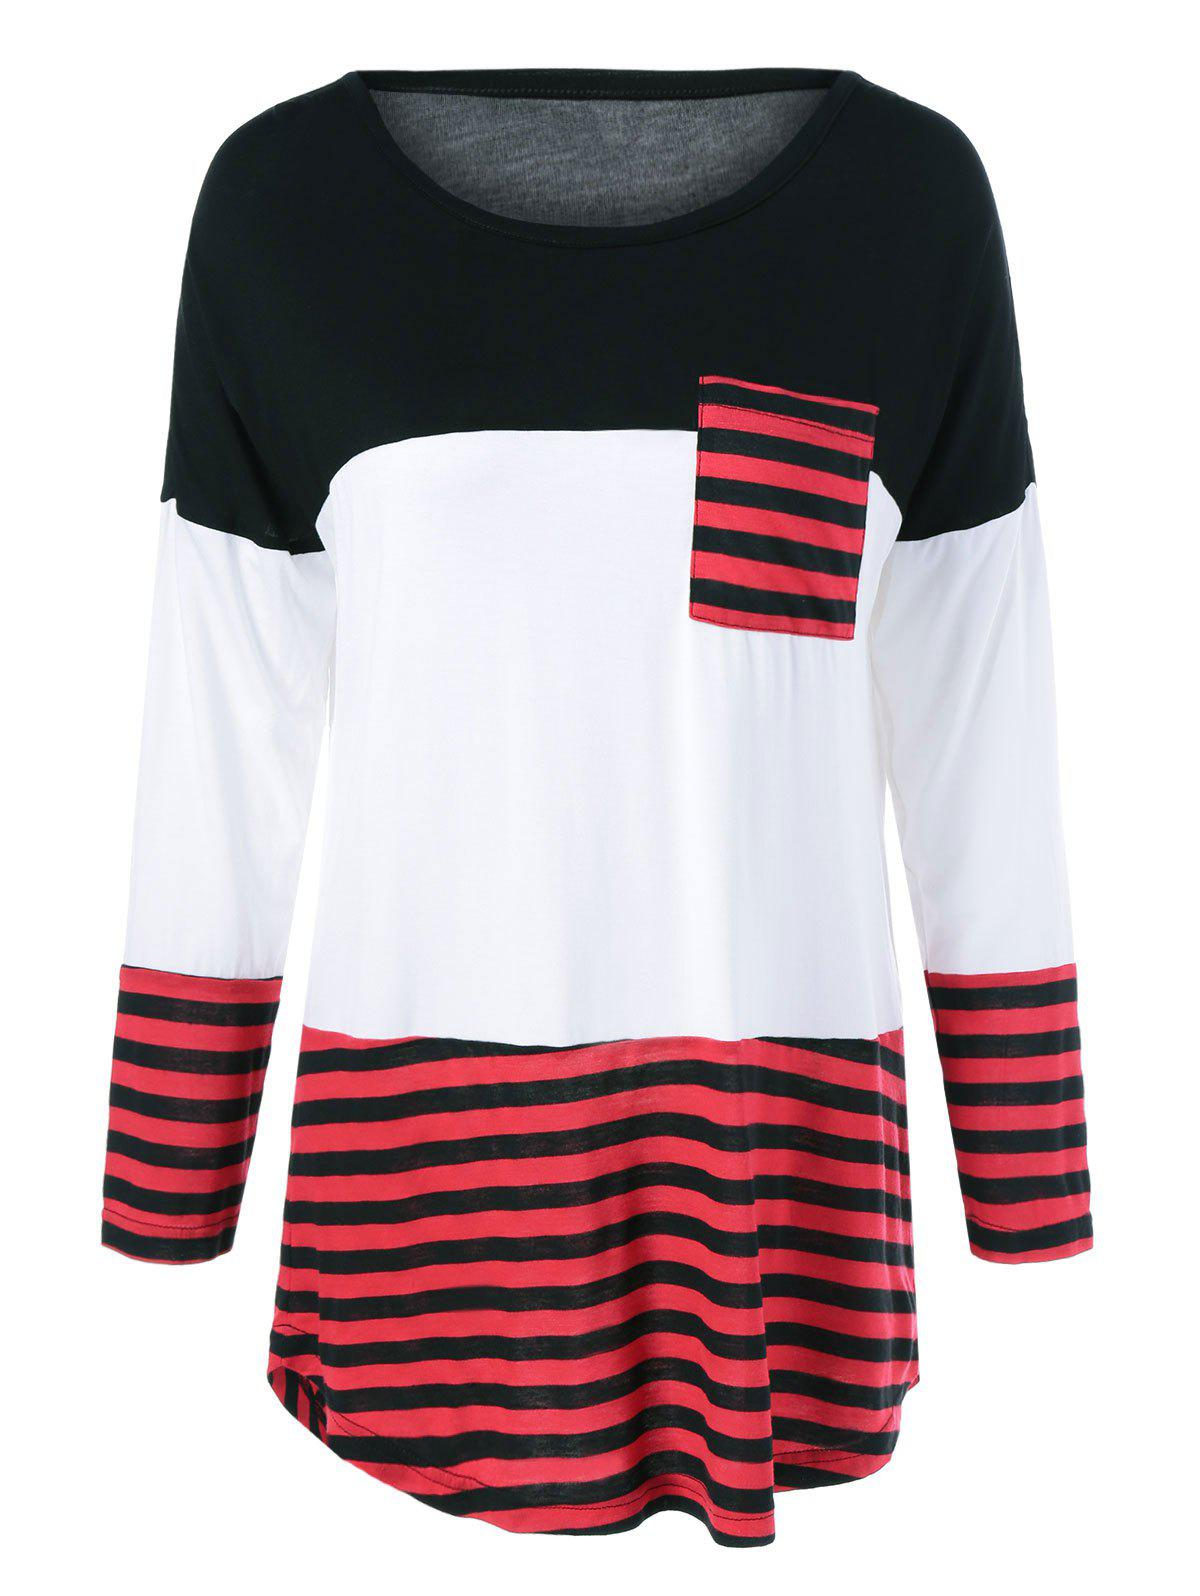 Chic One Pocket Striped High Low T-Shirt